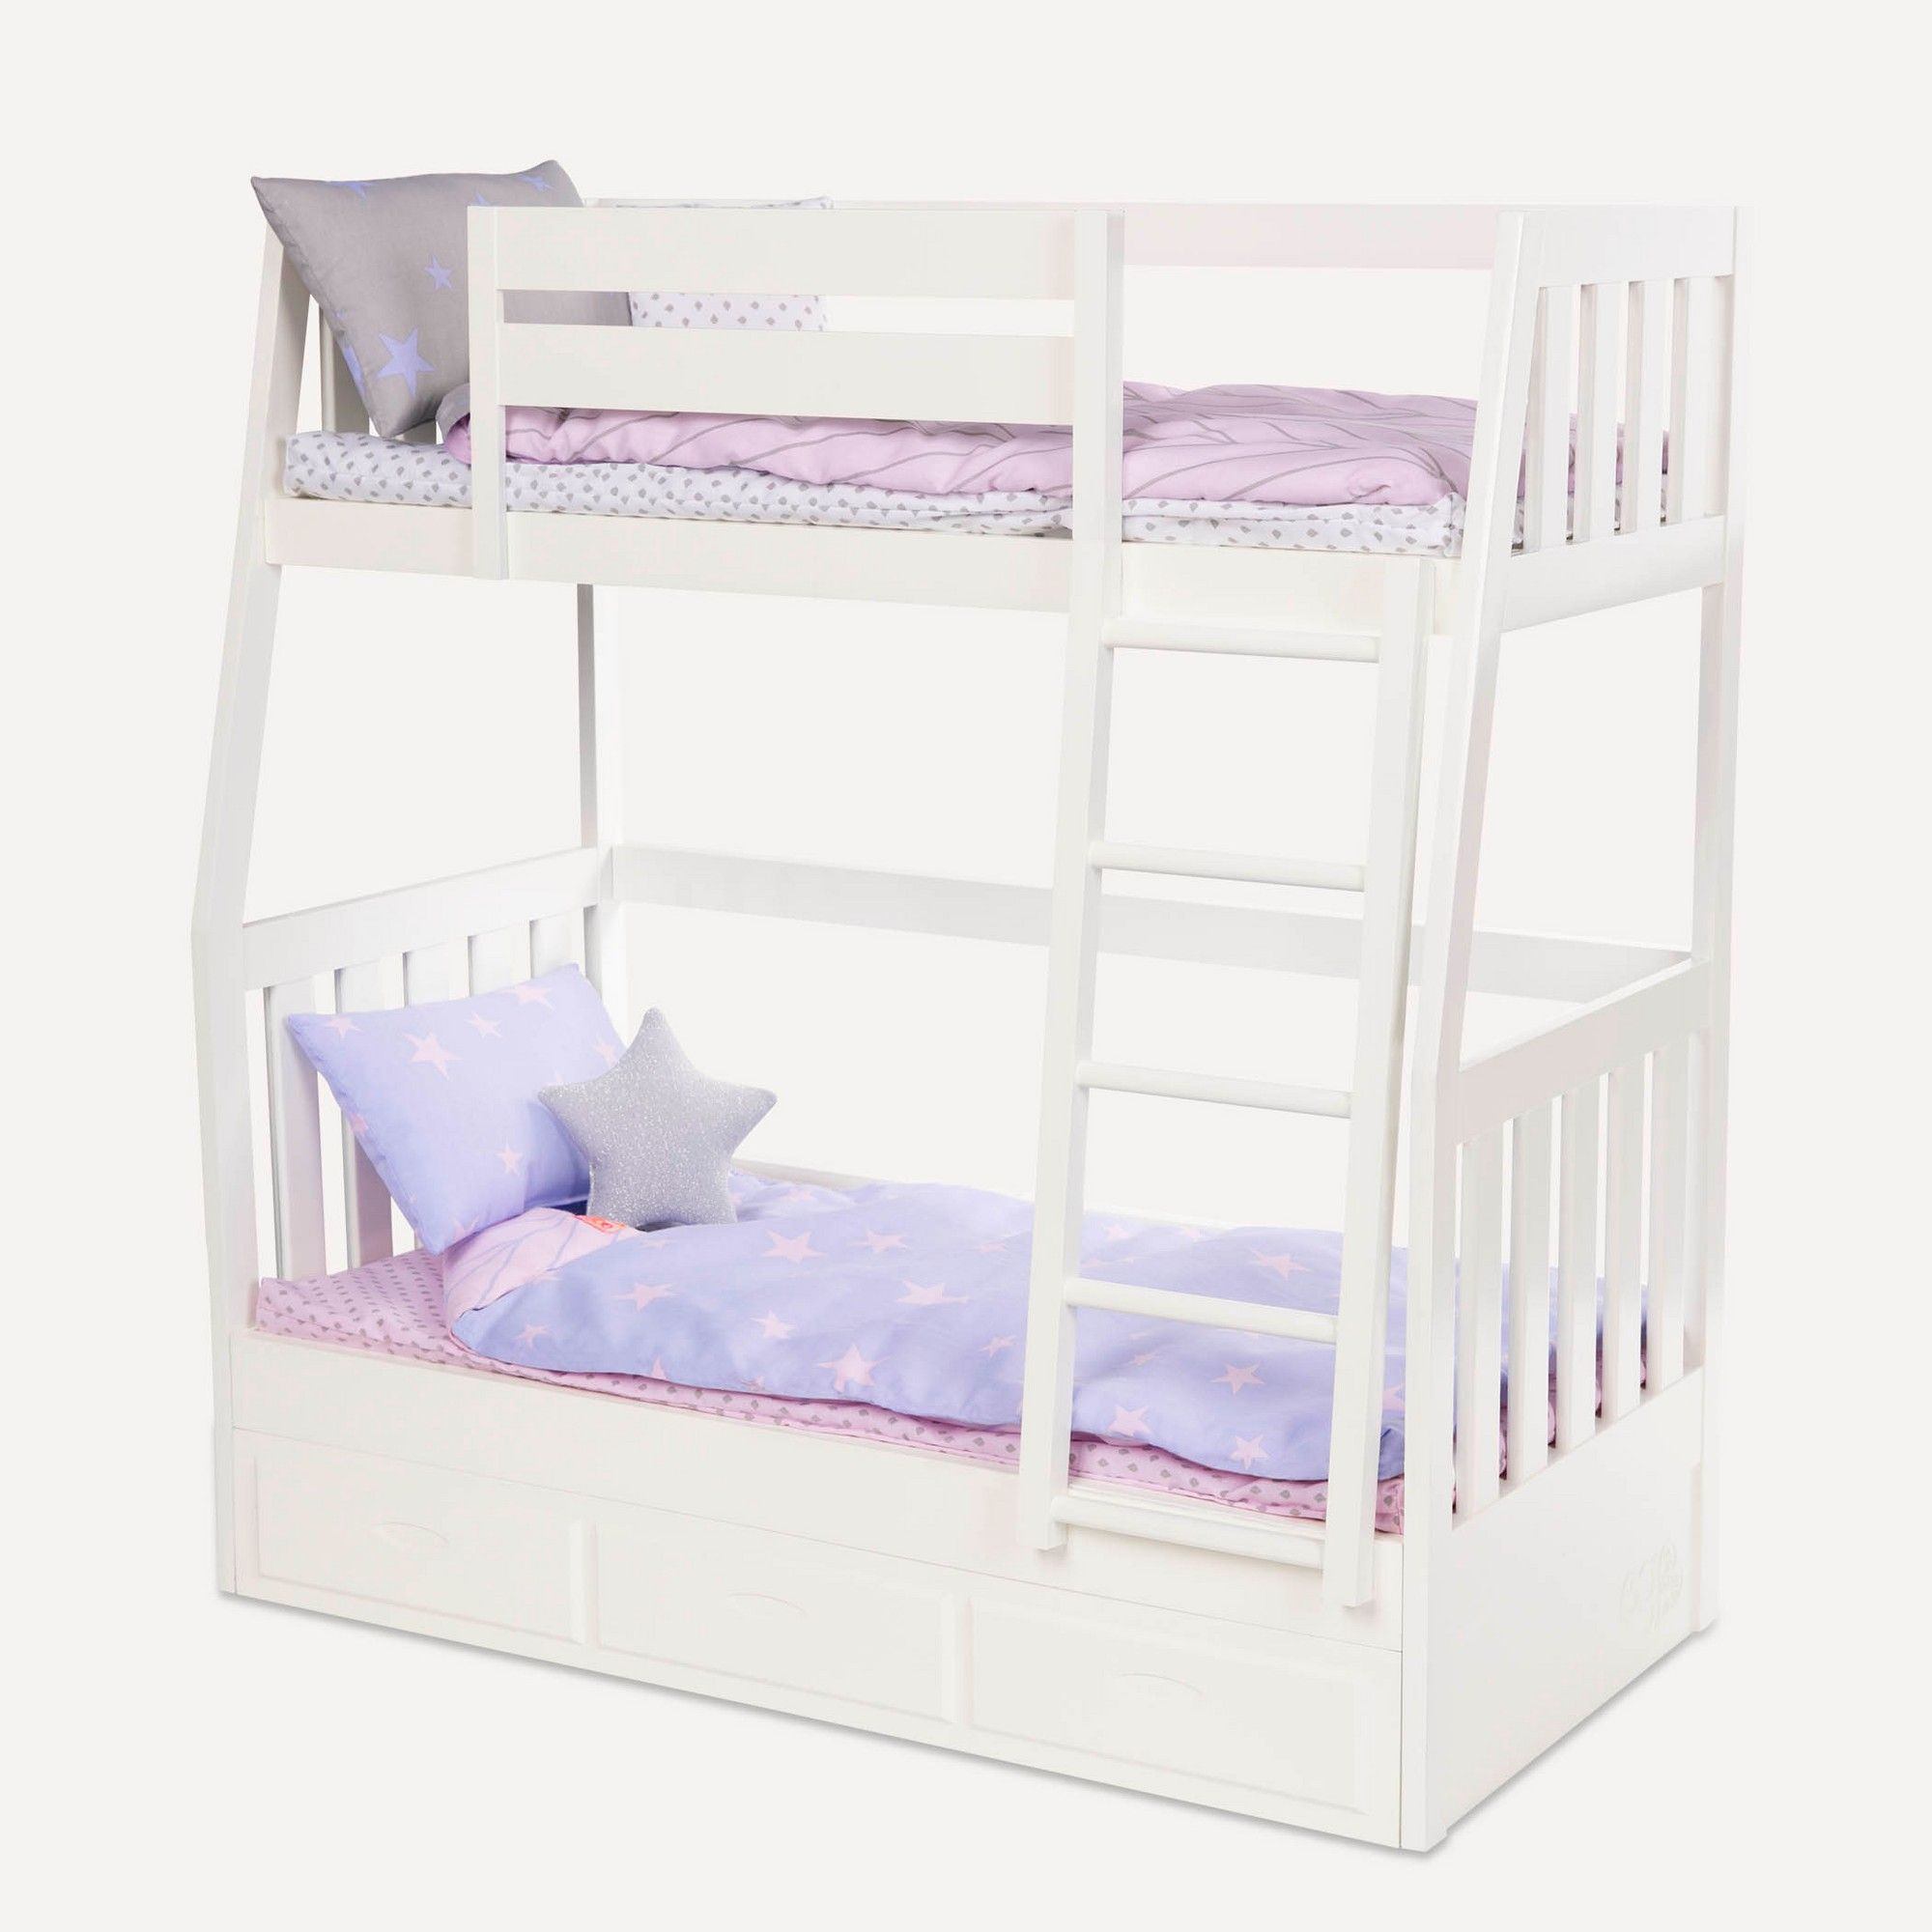 Our Generation Bunk Bed Doll Accessories Products Dolls Doll